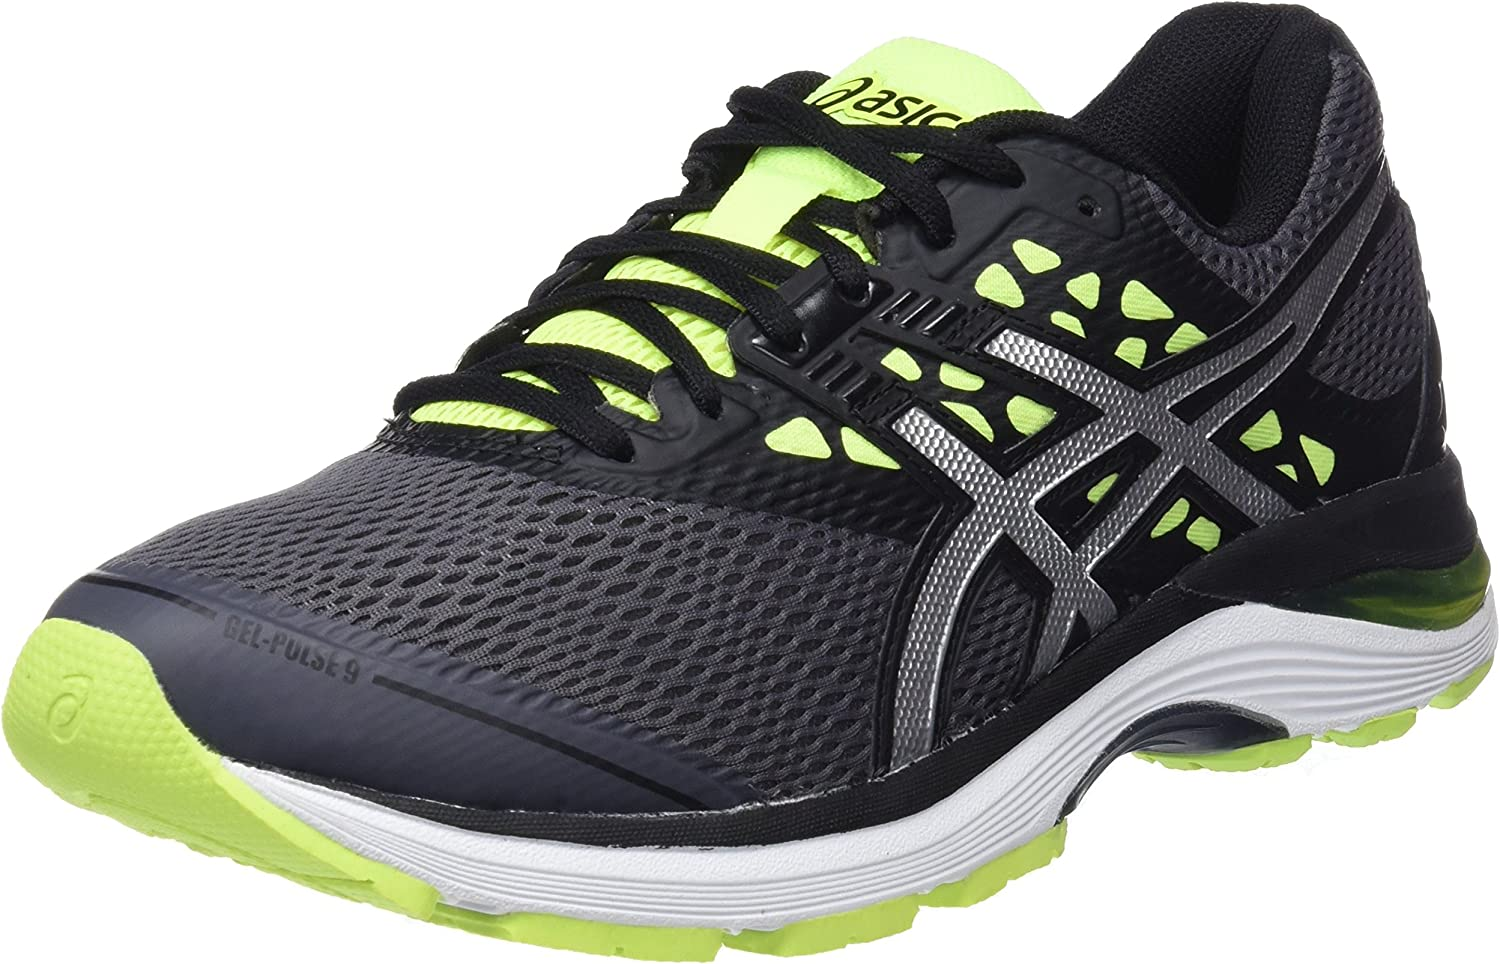 ASICS Gel-Pulse 9 Max 43% OFF Ranking TOP5 Mens Running Sneakers T7D3N Trainers Shoes